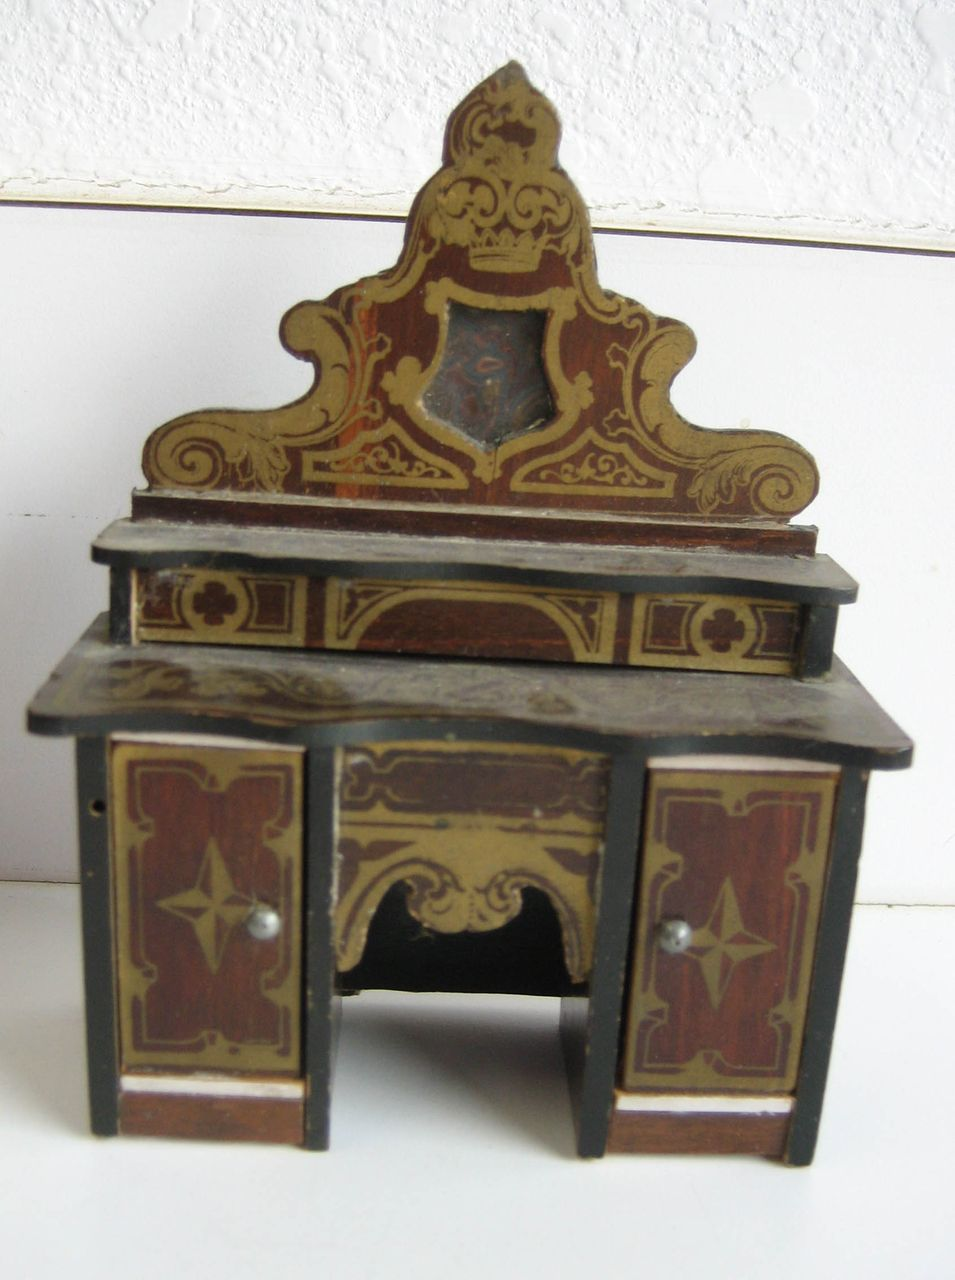 Antique doll house miniature Buffet Boule Biedermeier furniture gilt :  Sondra Krueger Antiques | Ruby Lane - Antique Doll House Miniature Buffet Boule Biedermeier Furniture Gilt